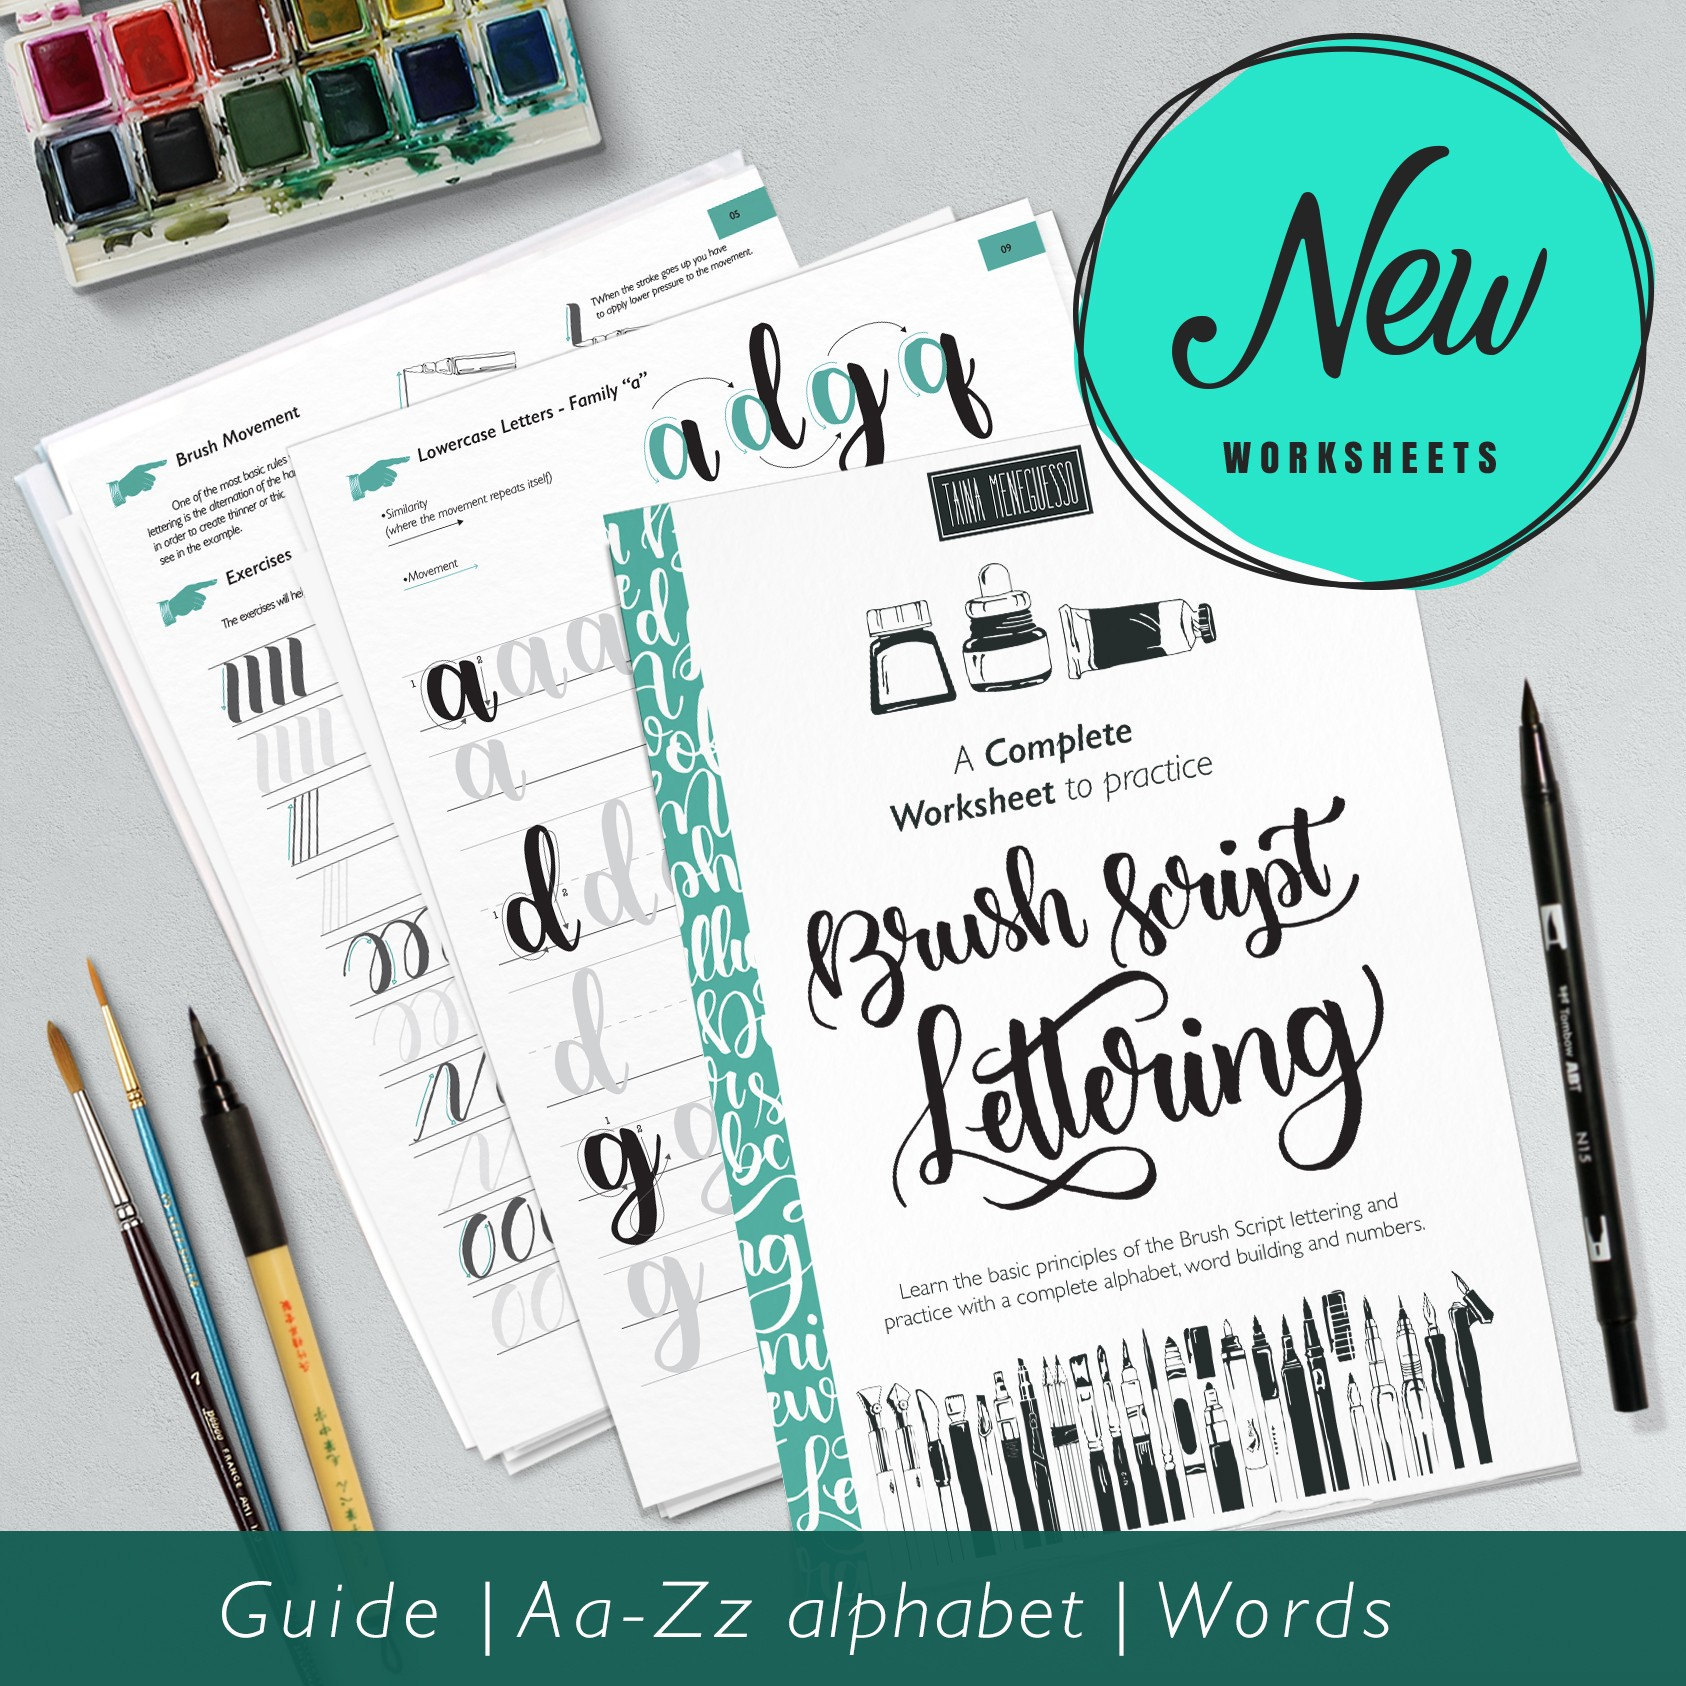 Learn Brush Hand Lettering printable worksheets with | Etsy